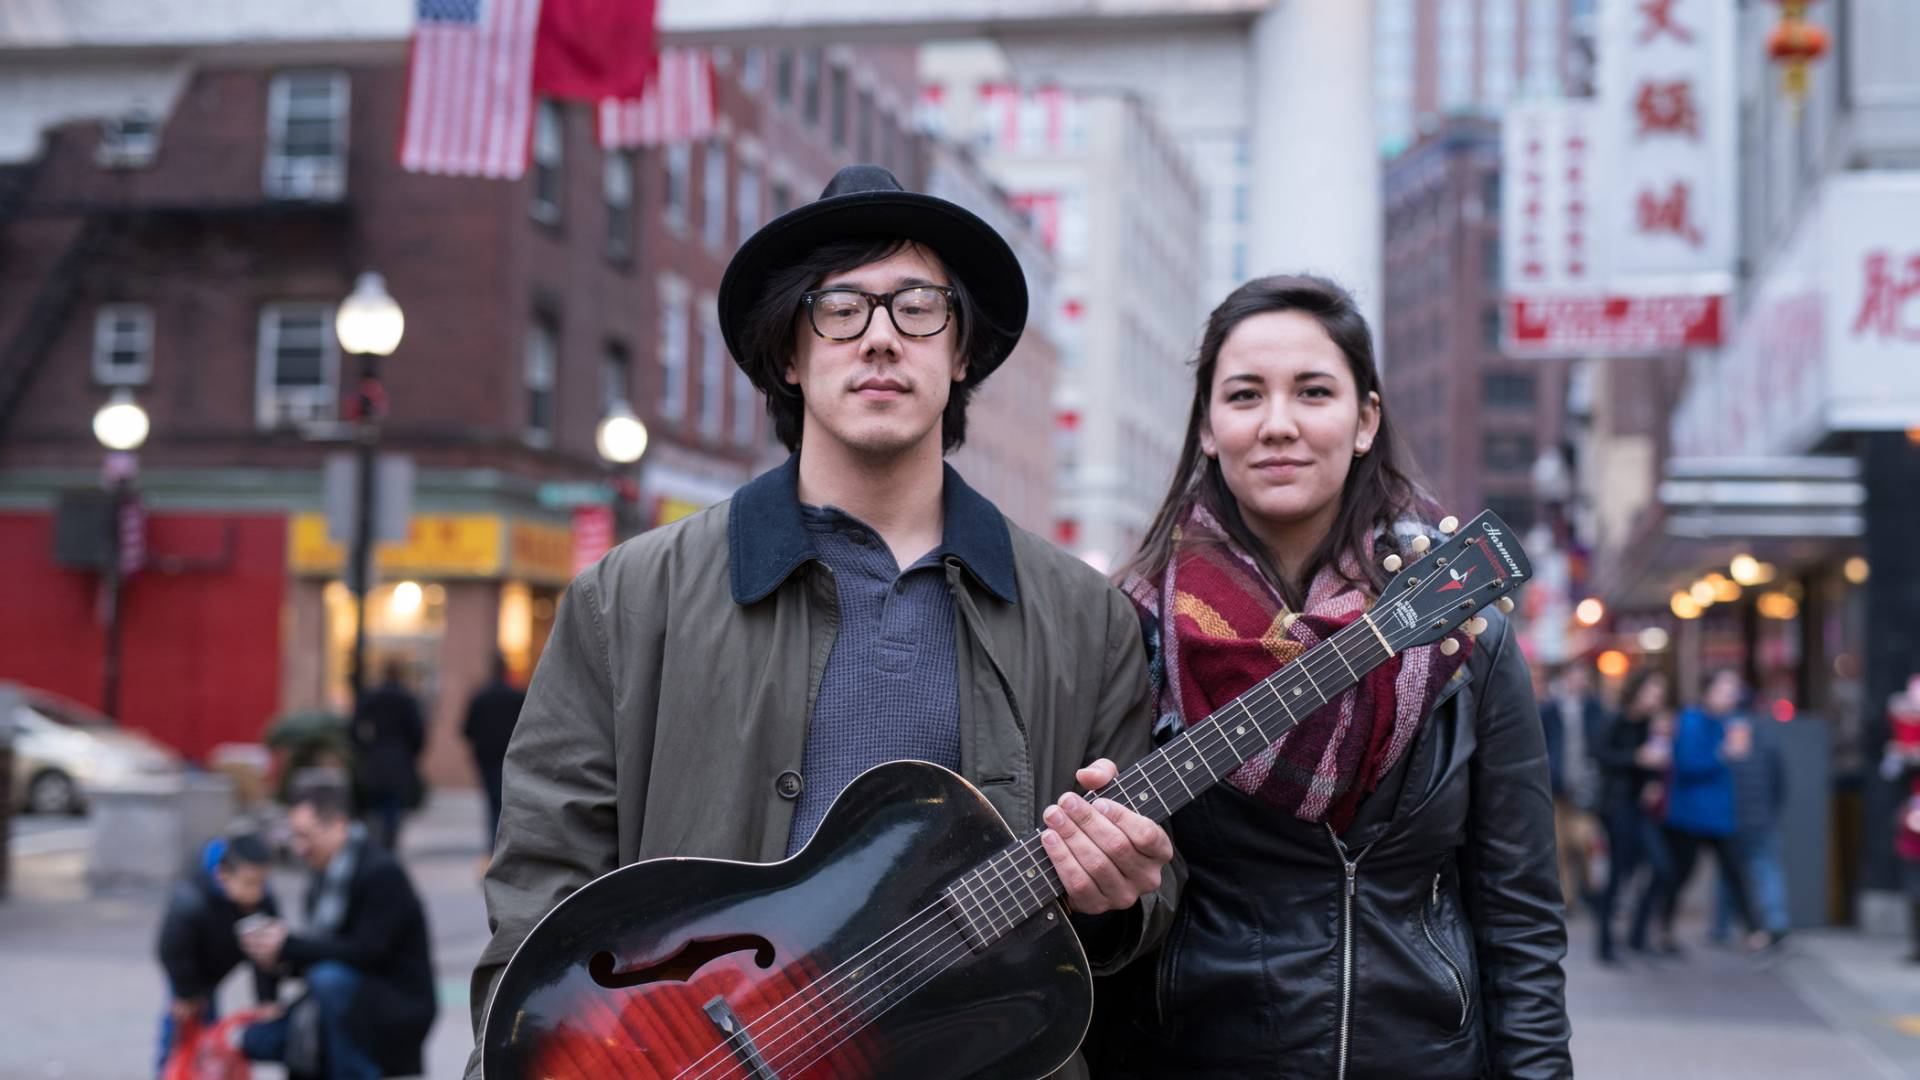 Young man in a hat holding an acoustic guitar standing next to a young woman